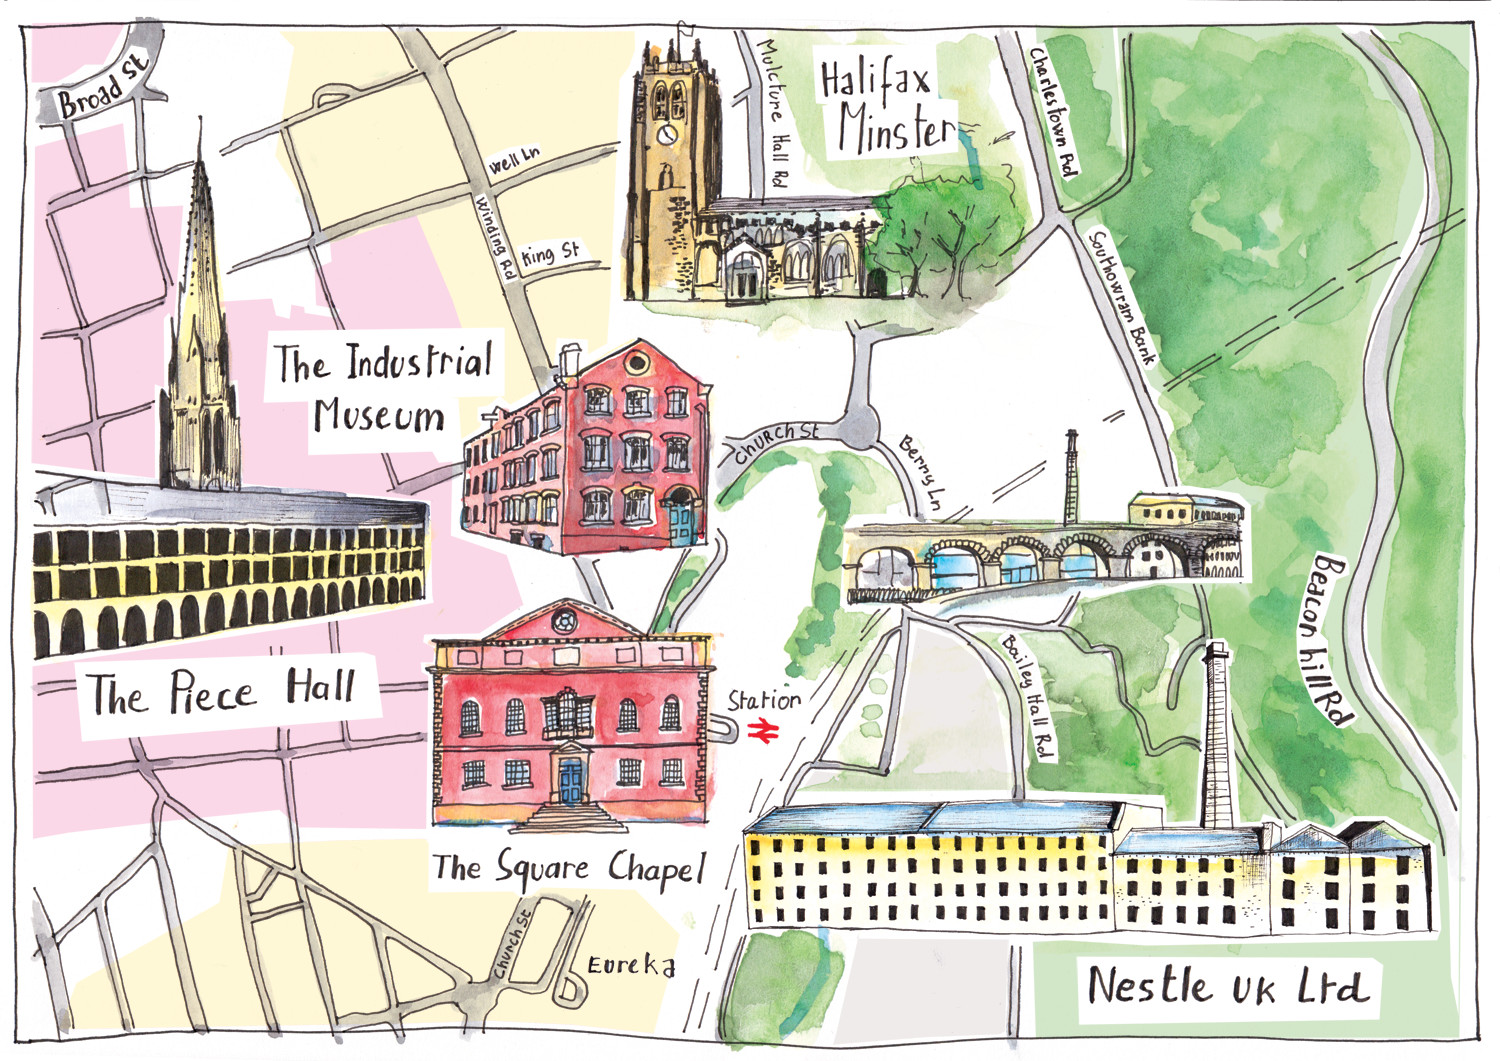 Nestle Hand Illustrated Map of Halifax by Sophie Peanut